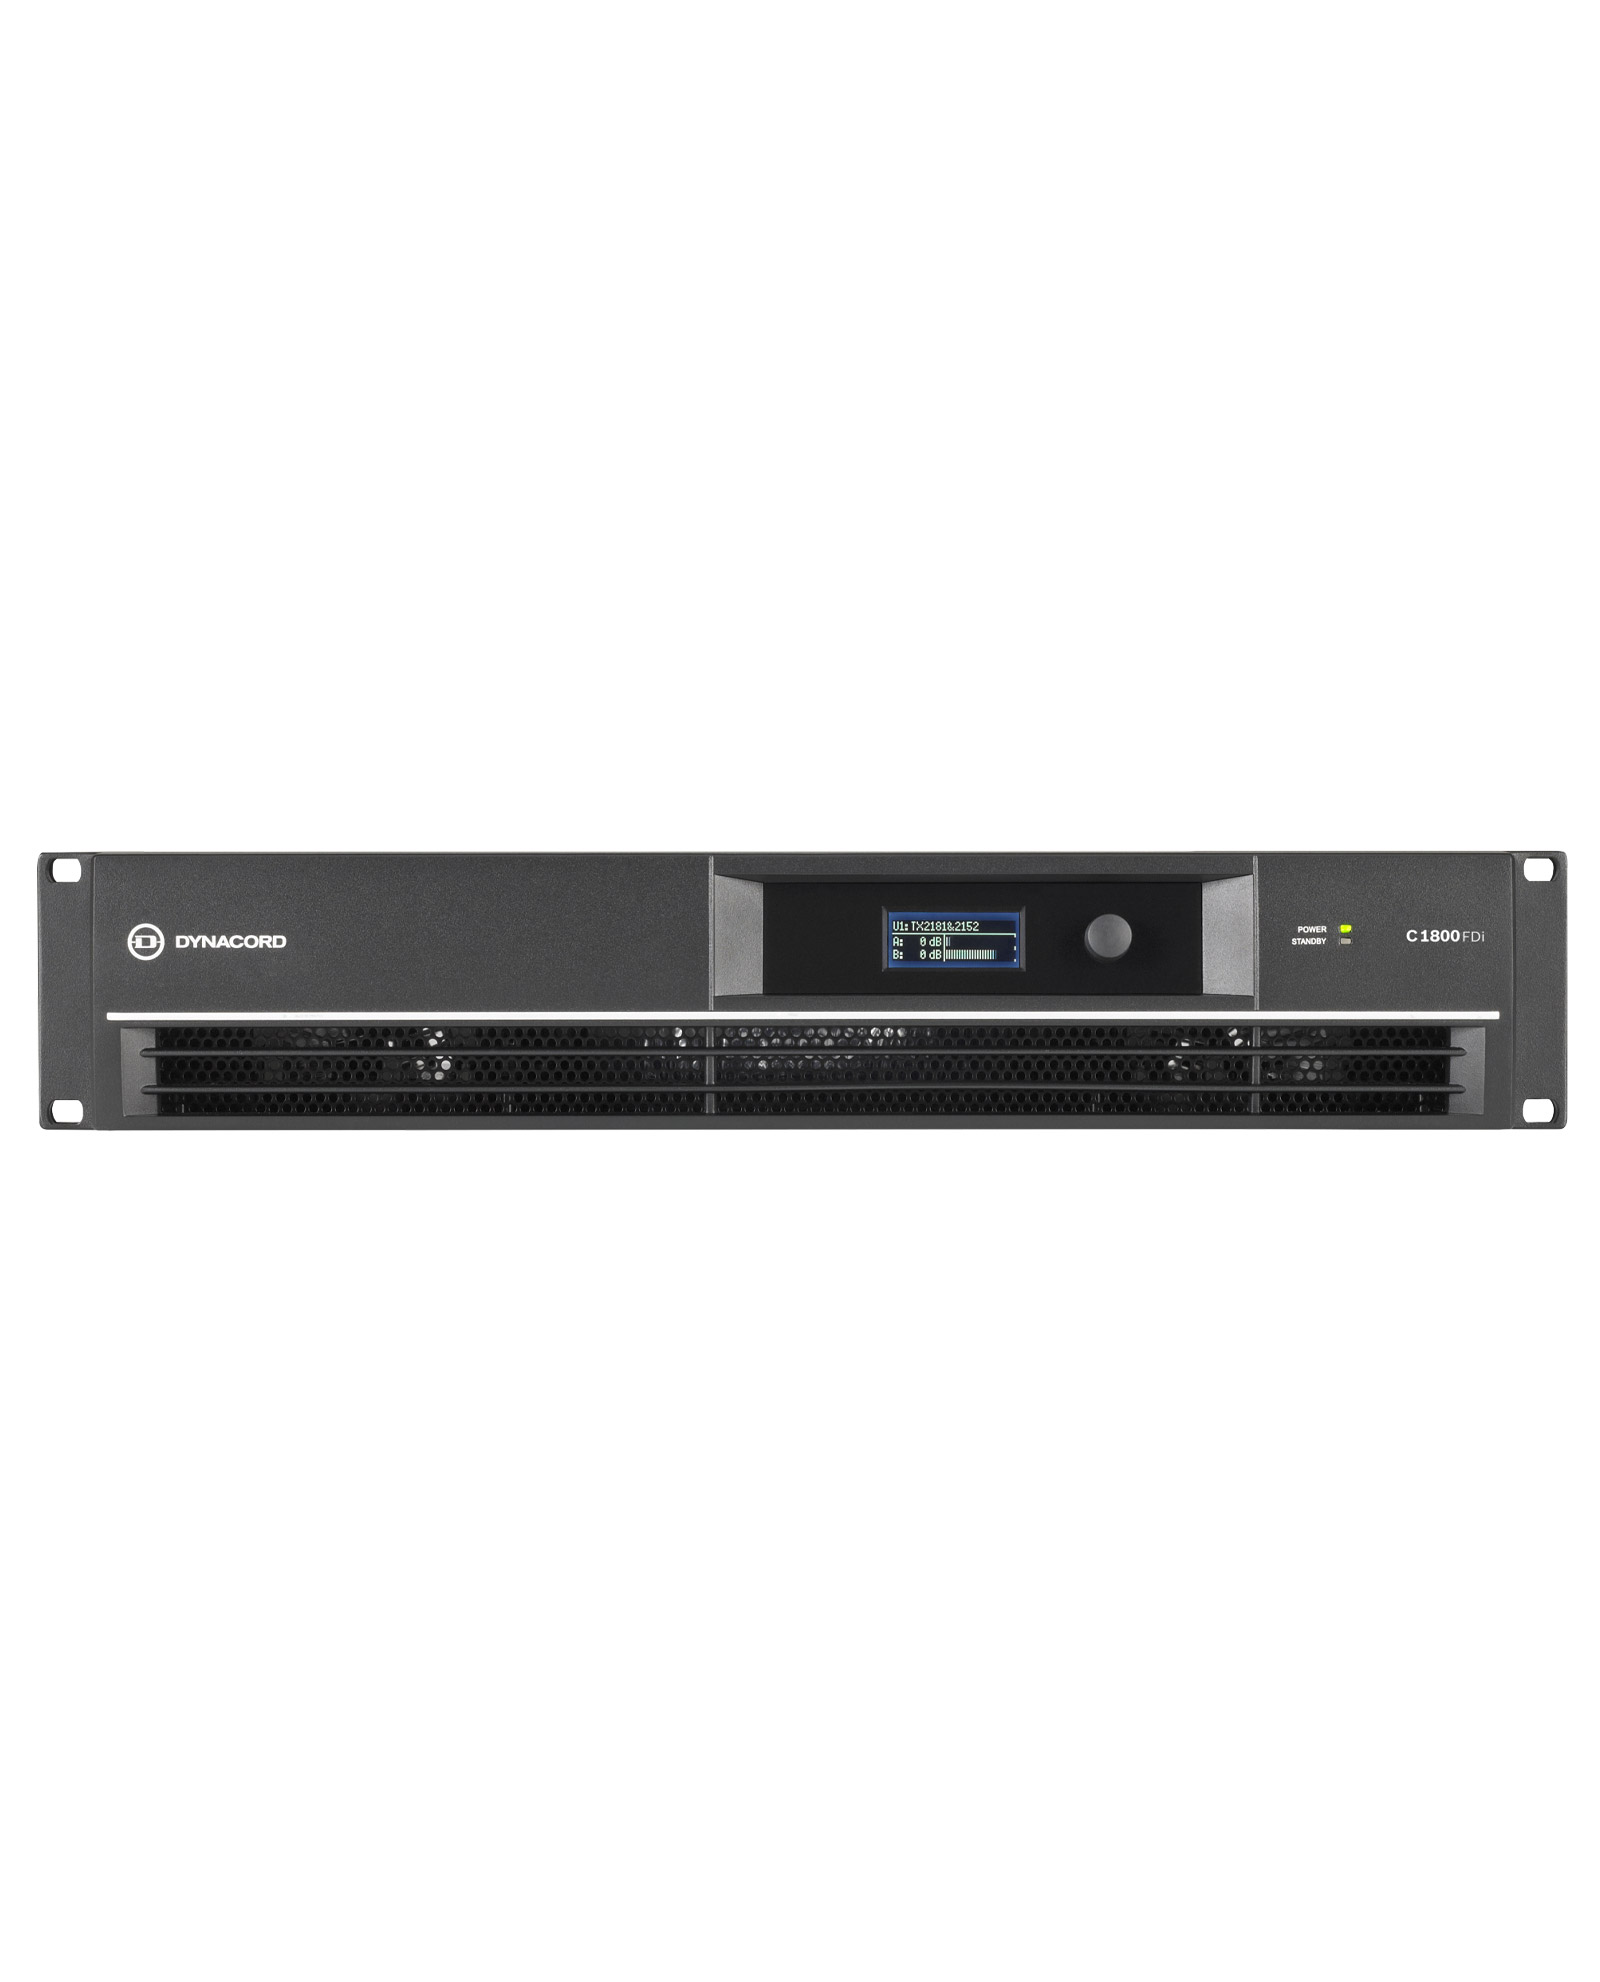 Dynacord C1800fdi Dsp 2x950w Power Amplifier